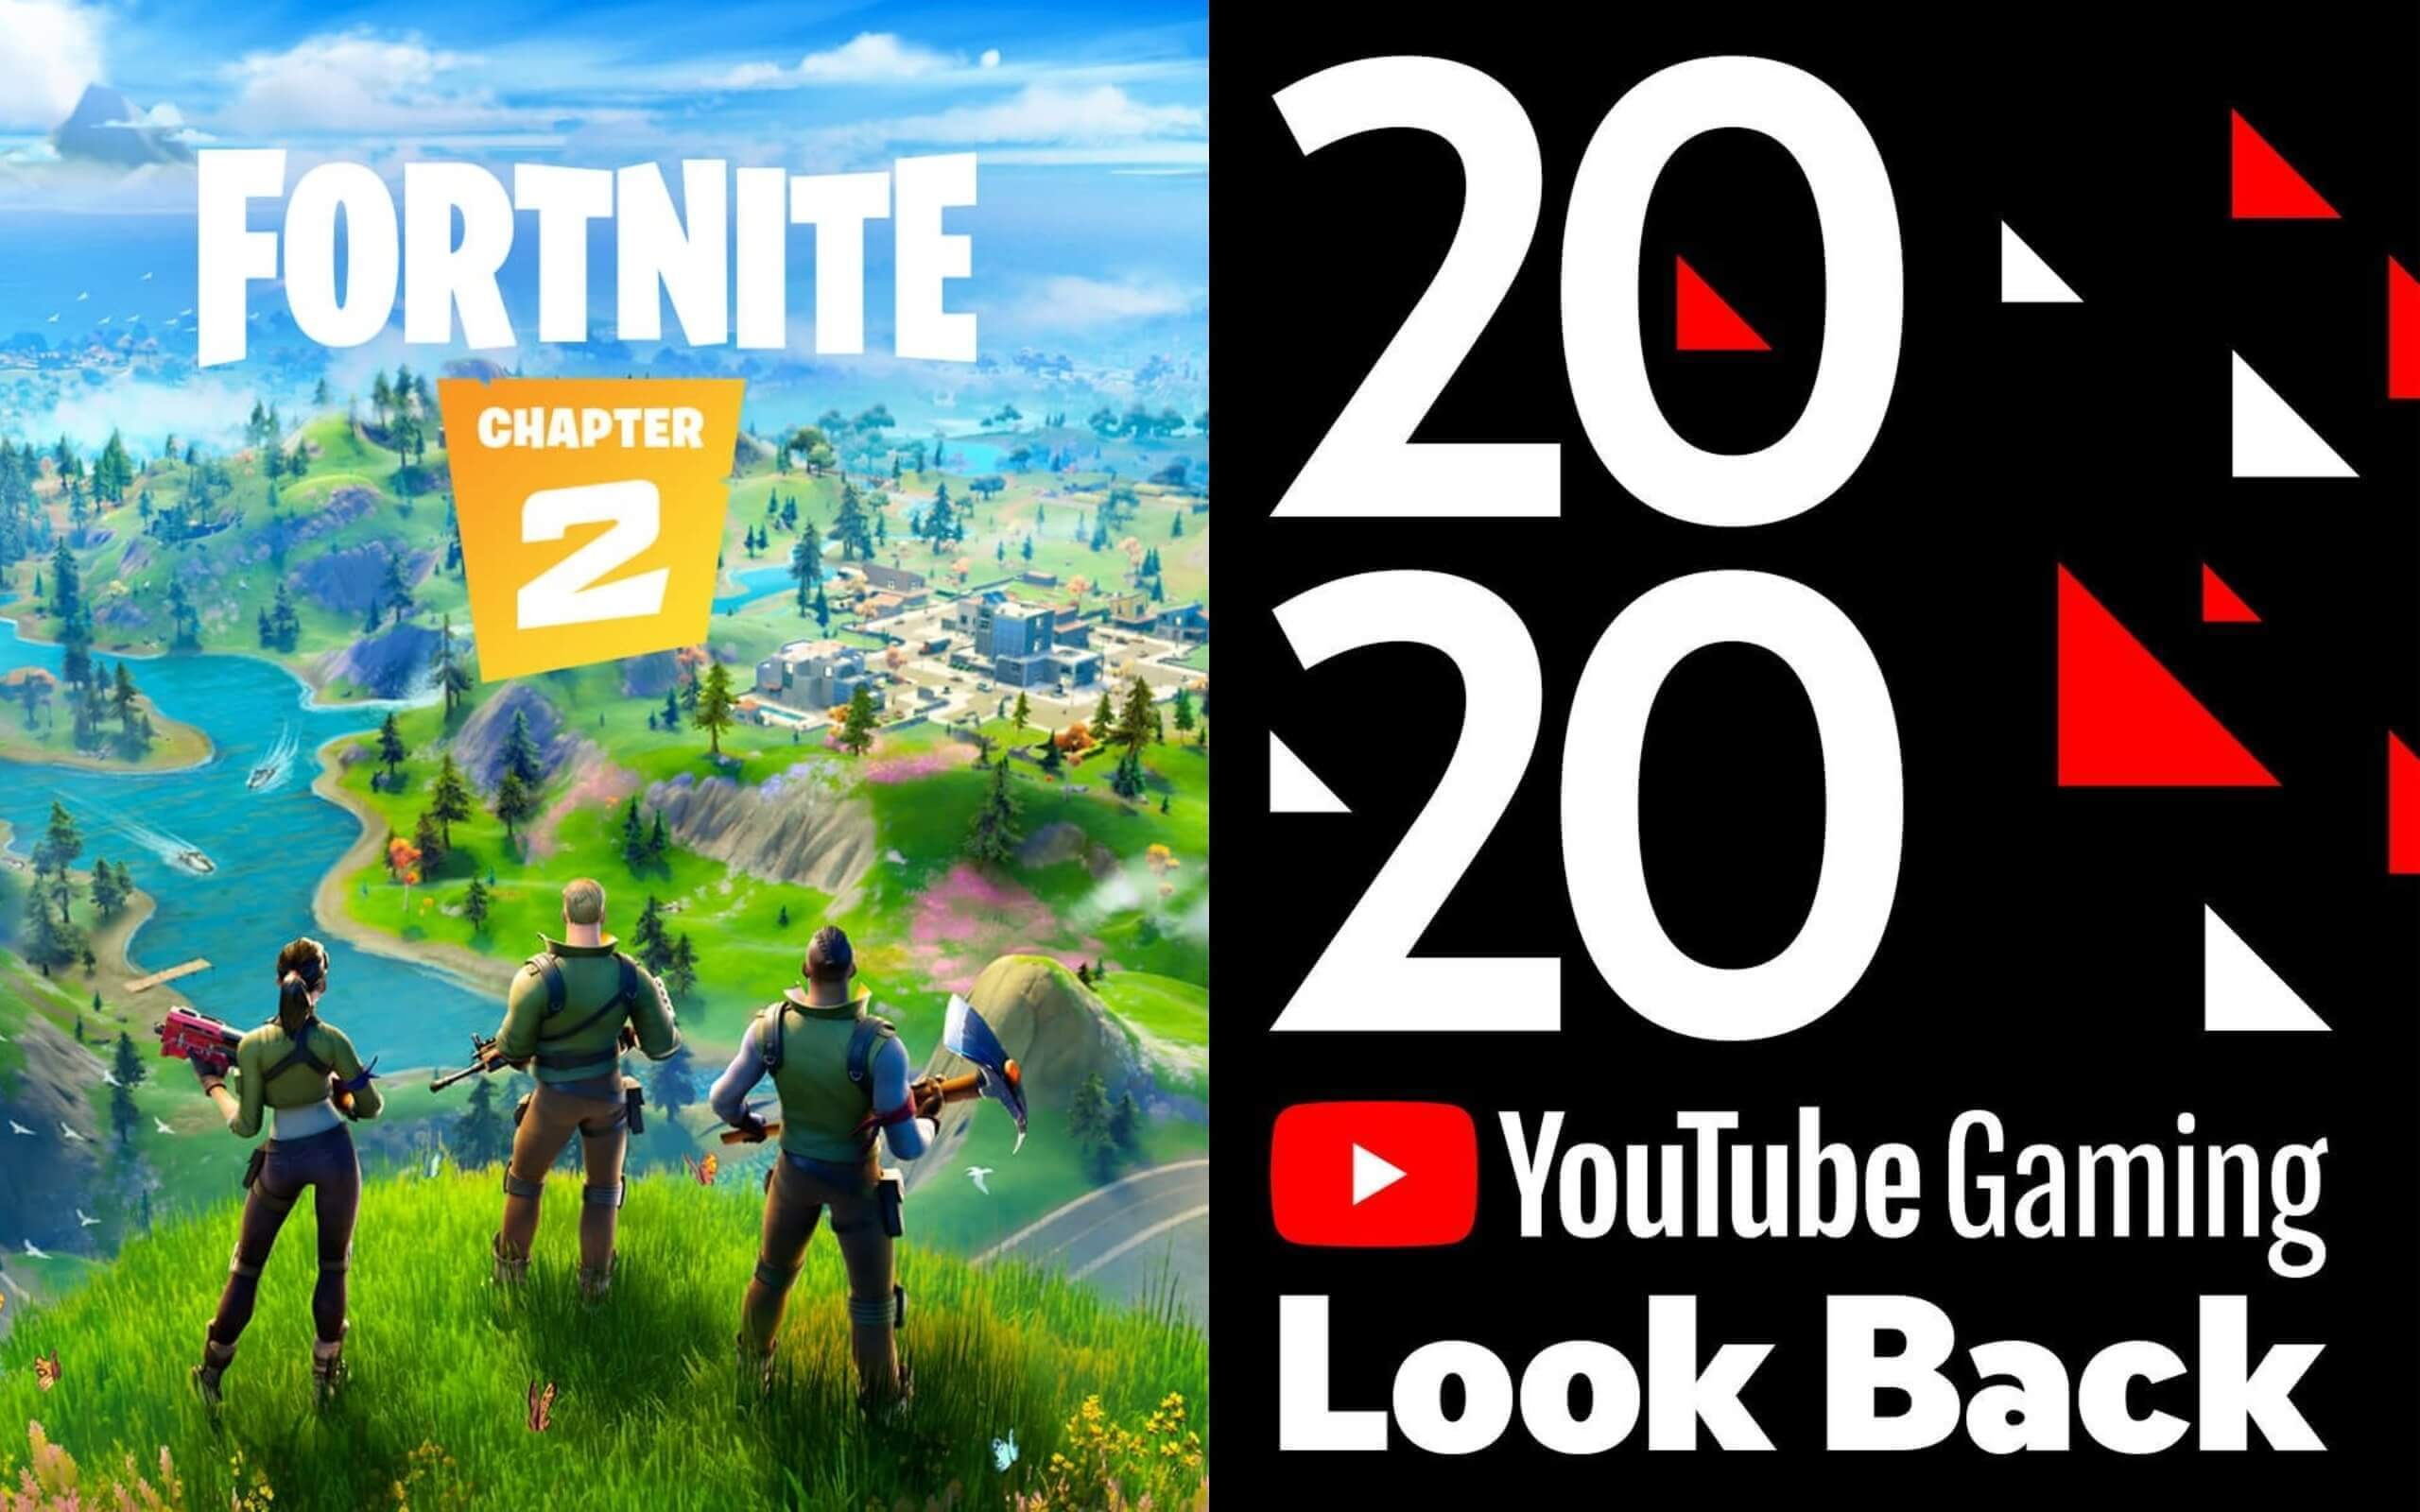 Fortnite ranks among most watched games on Youtube in 2020